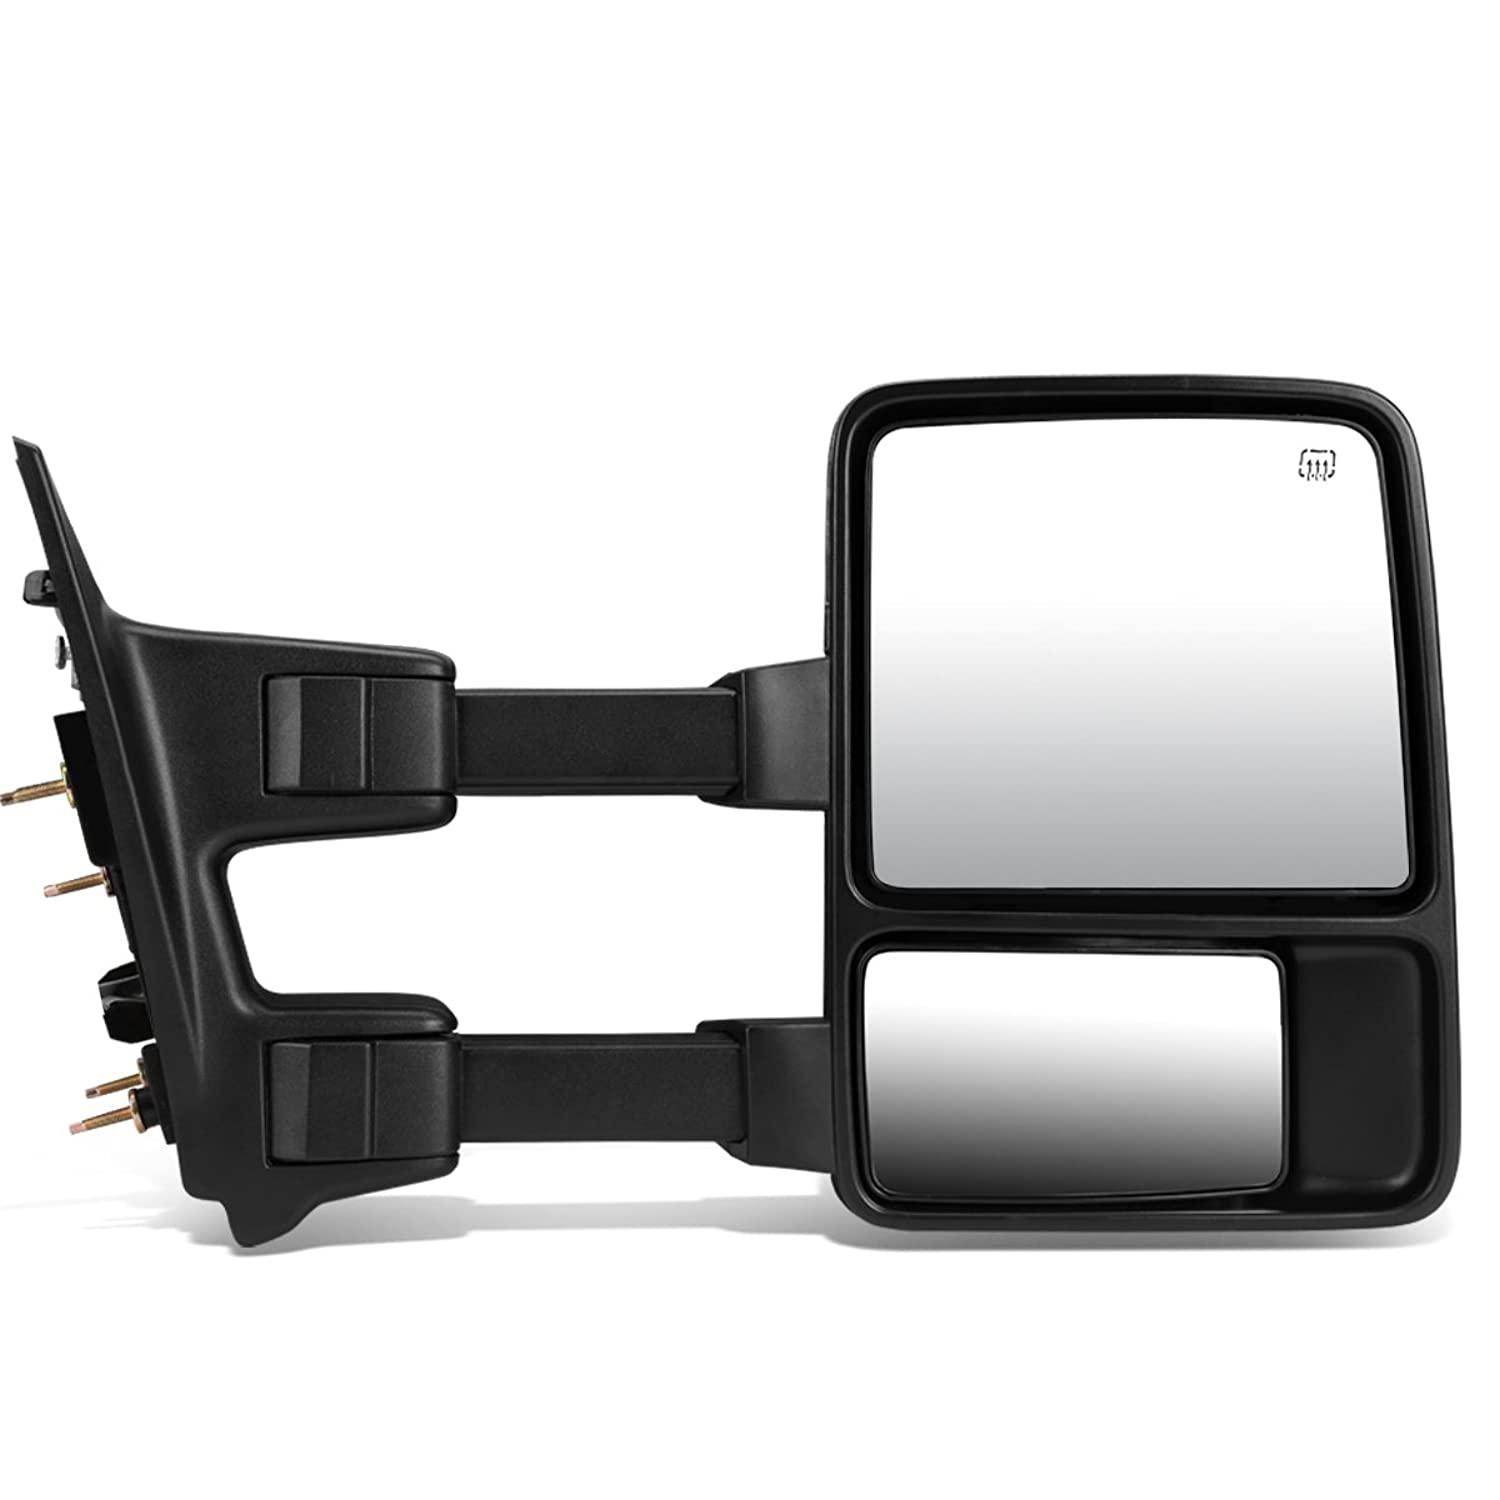 DNA MOTORING TWM-027-T888-BK-AM-R Powered Towing Mirror Heat LED Signal Right (08-16 Ford Super Duty)